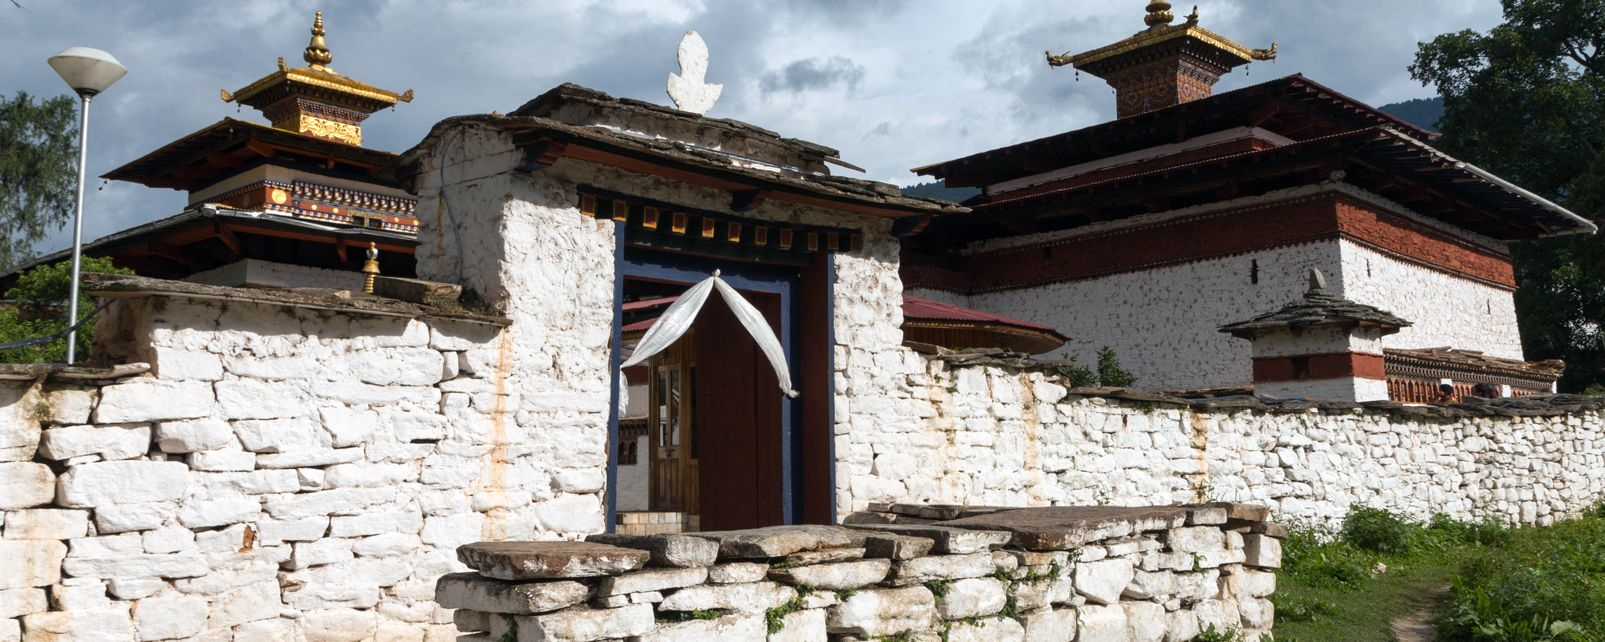 Los templos Kyichu Lhakhang, Arquitectura religiosa, Bután